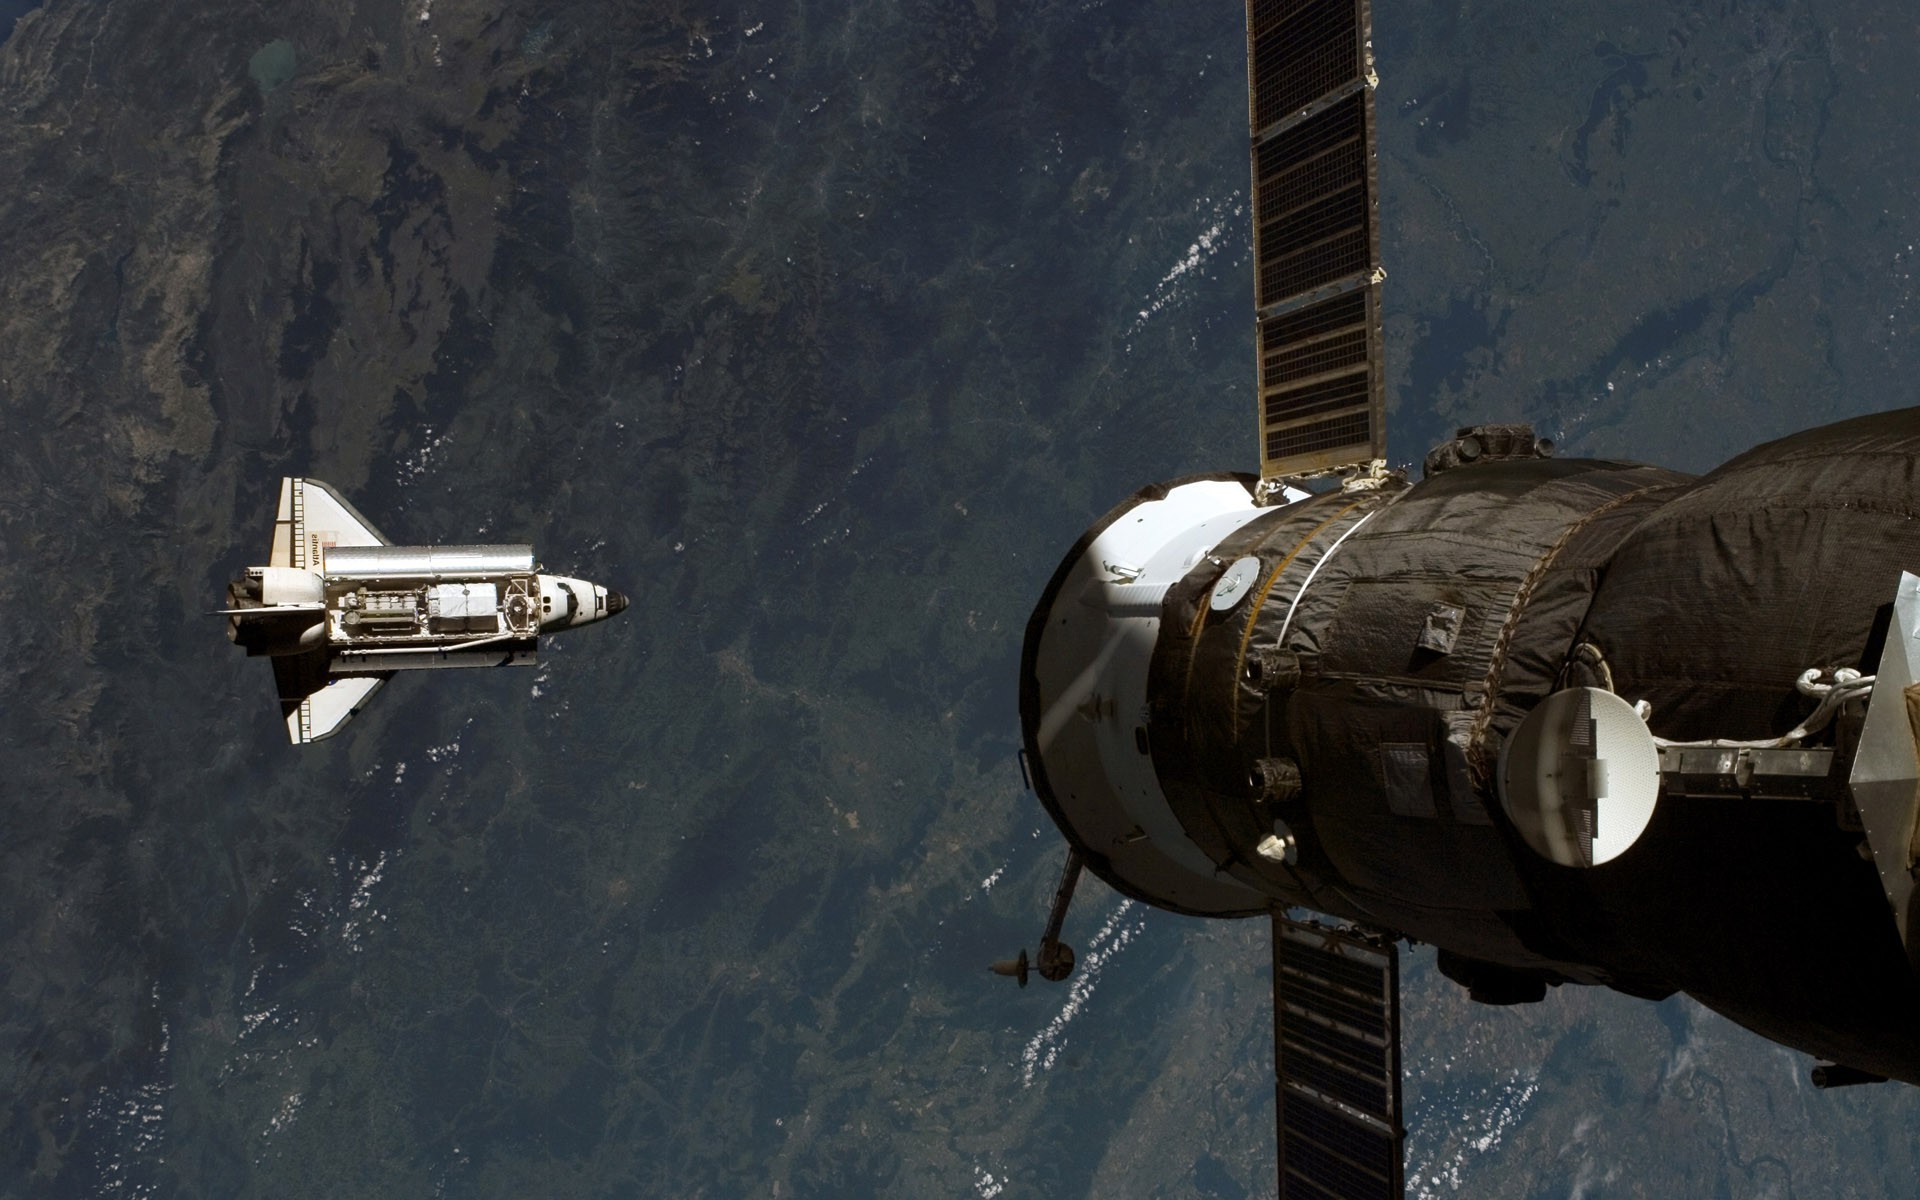 Photography, Mir Space Station, Mir, Space Shuttle - Space Shuttle Photography In Space , HD Wallpaper & Backgrounds